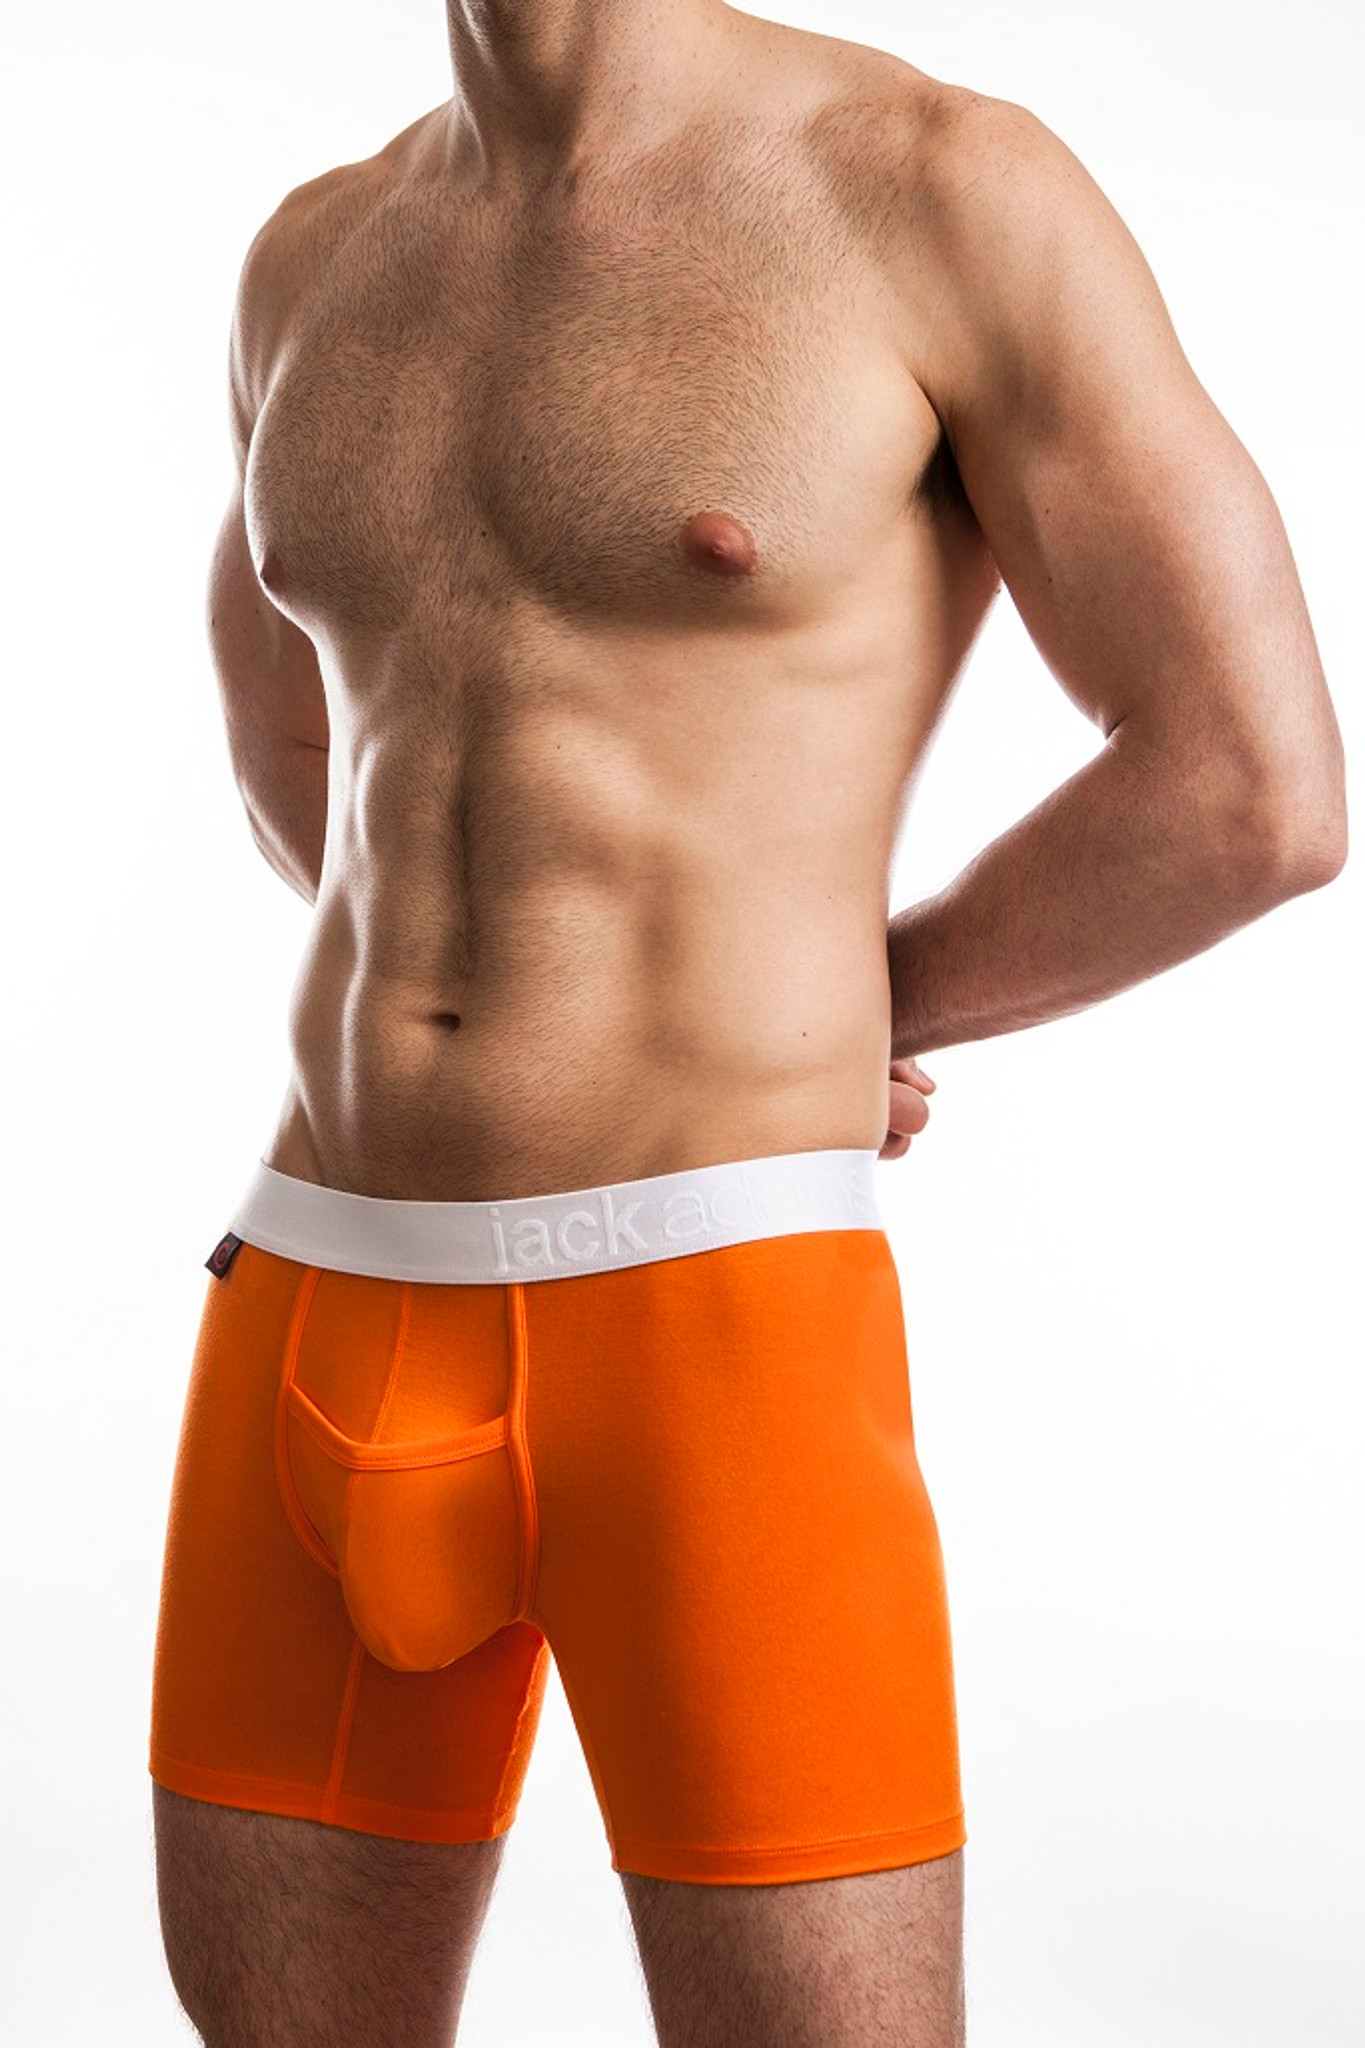 Jack Adams Air Amy Boxer Brief